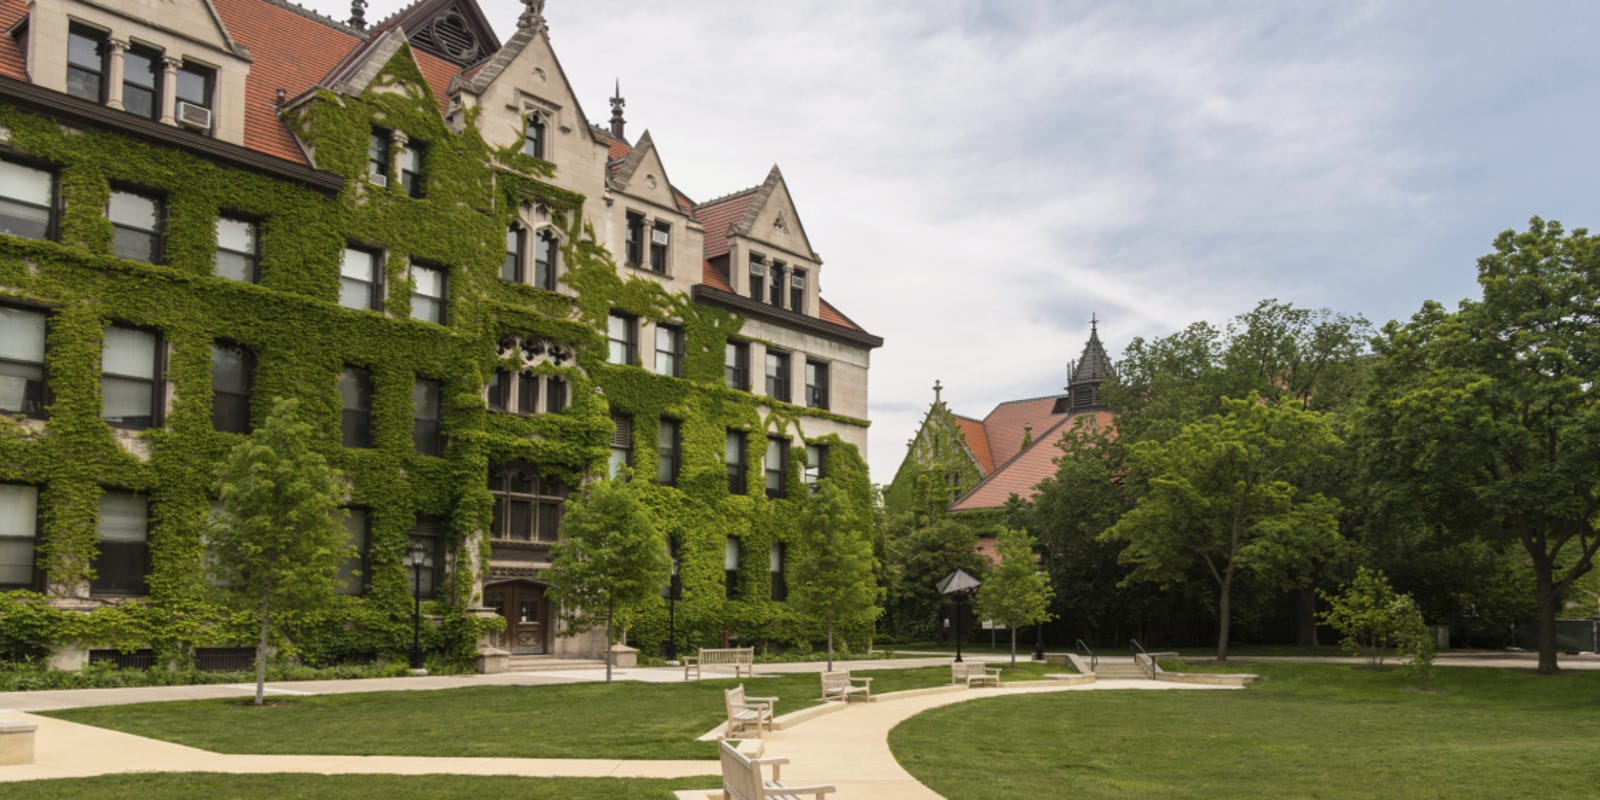 As 'yield rates' fluctuate, colleges work to protect reputations